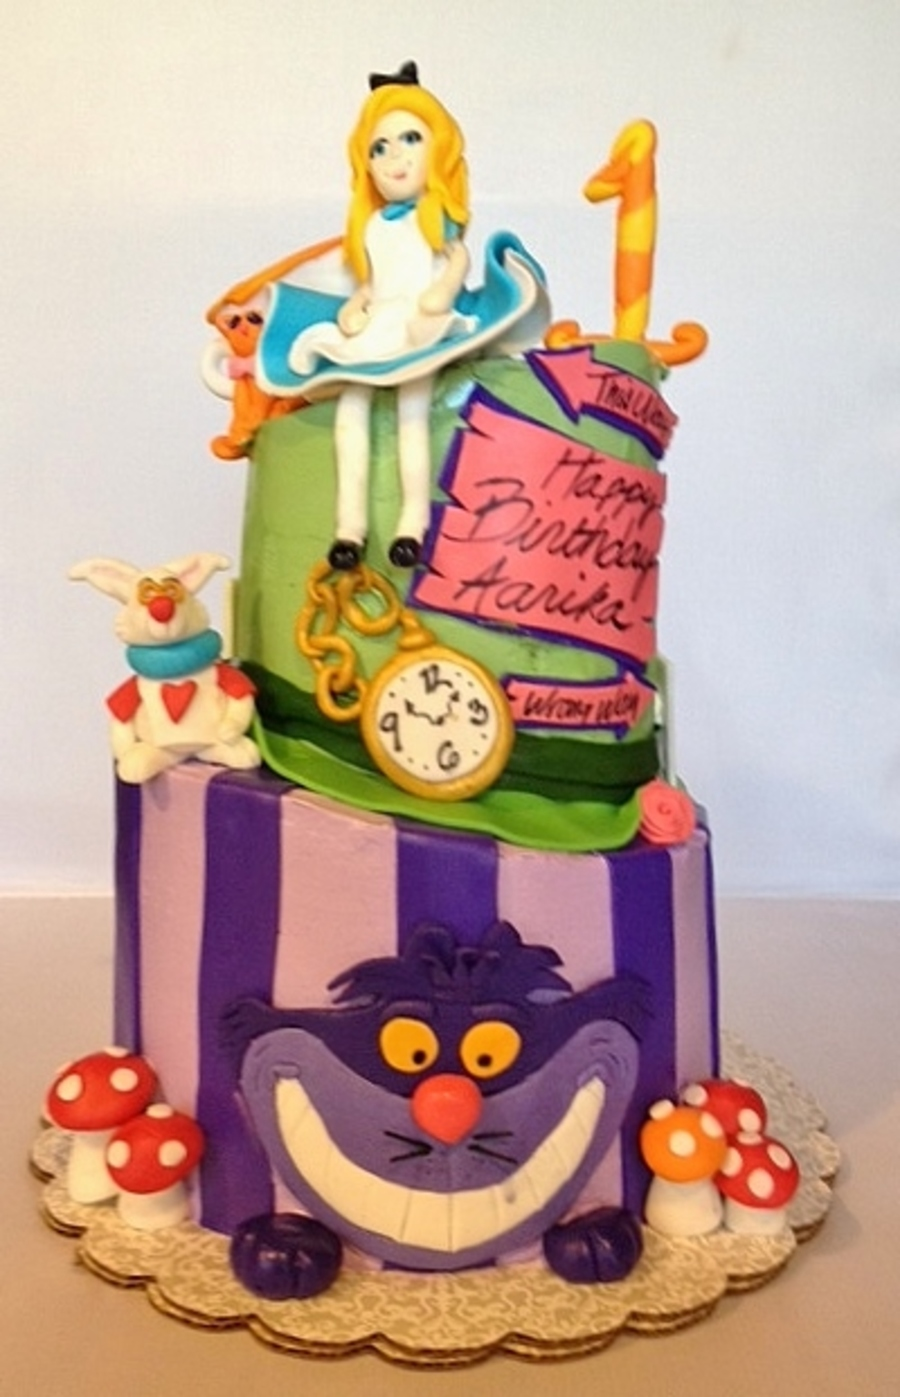 Alice In Wonderland Cake Milk Choc Cake With Cookies And Cream Filling on Cake Central